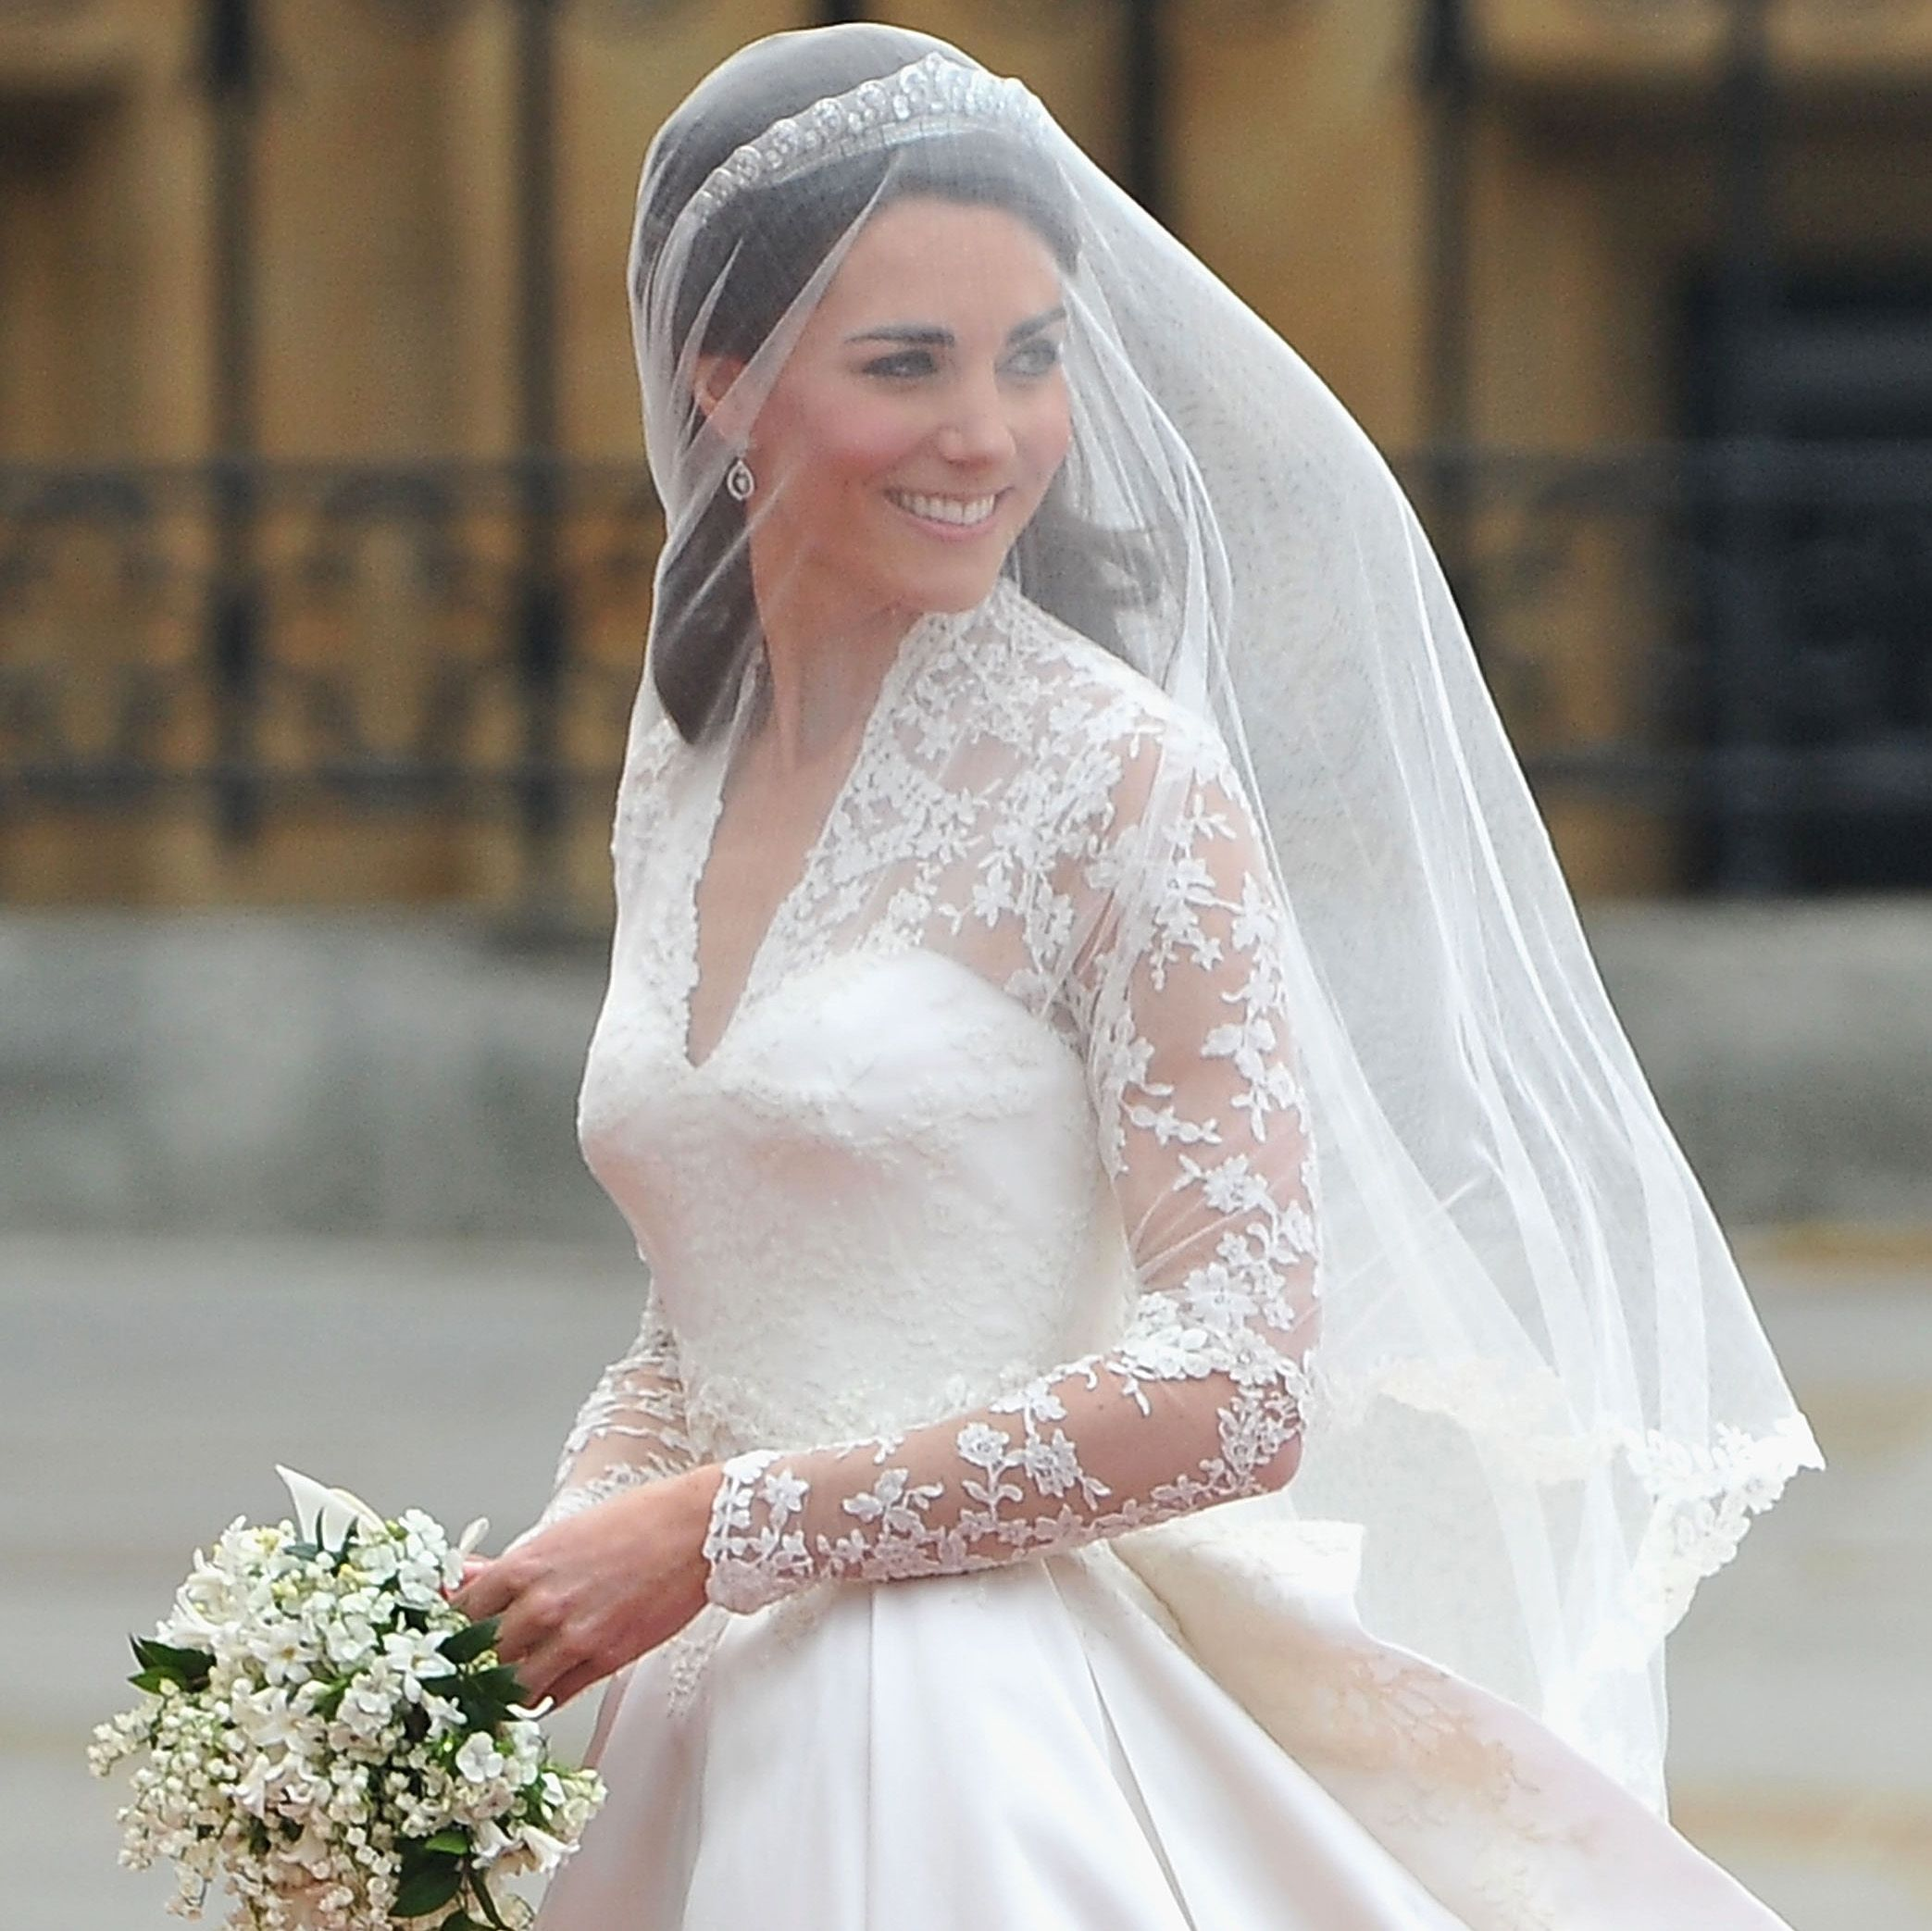 Kate Middleton S Wedding Dress Featured This Touching Detail